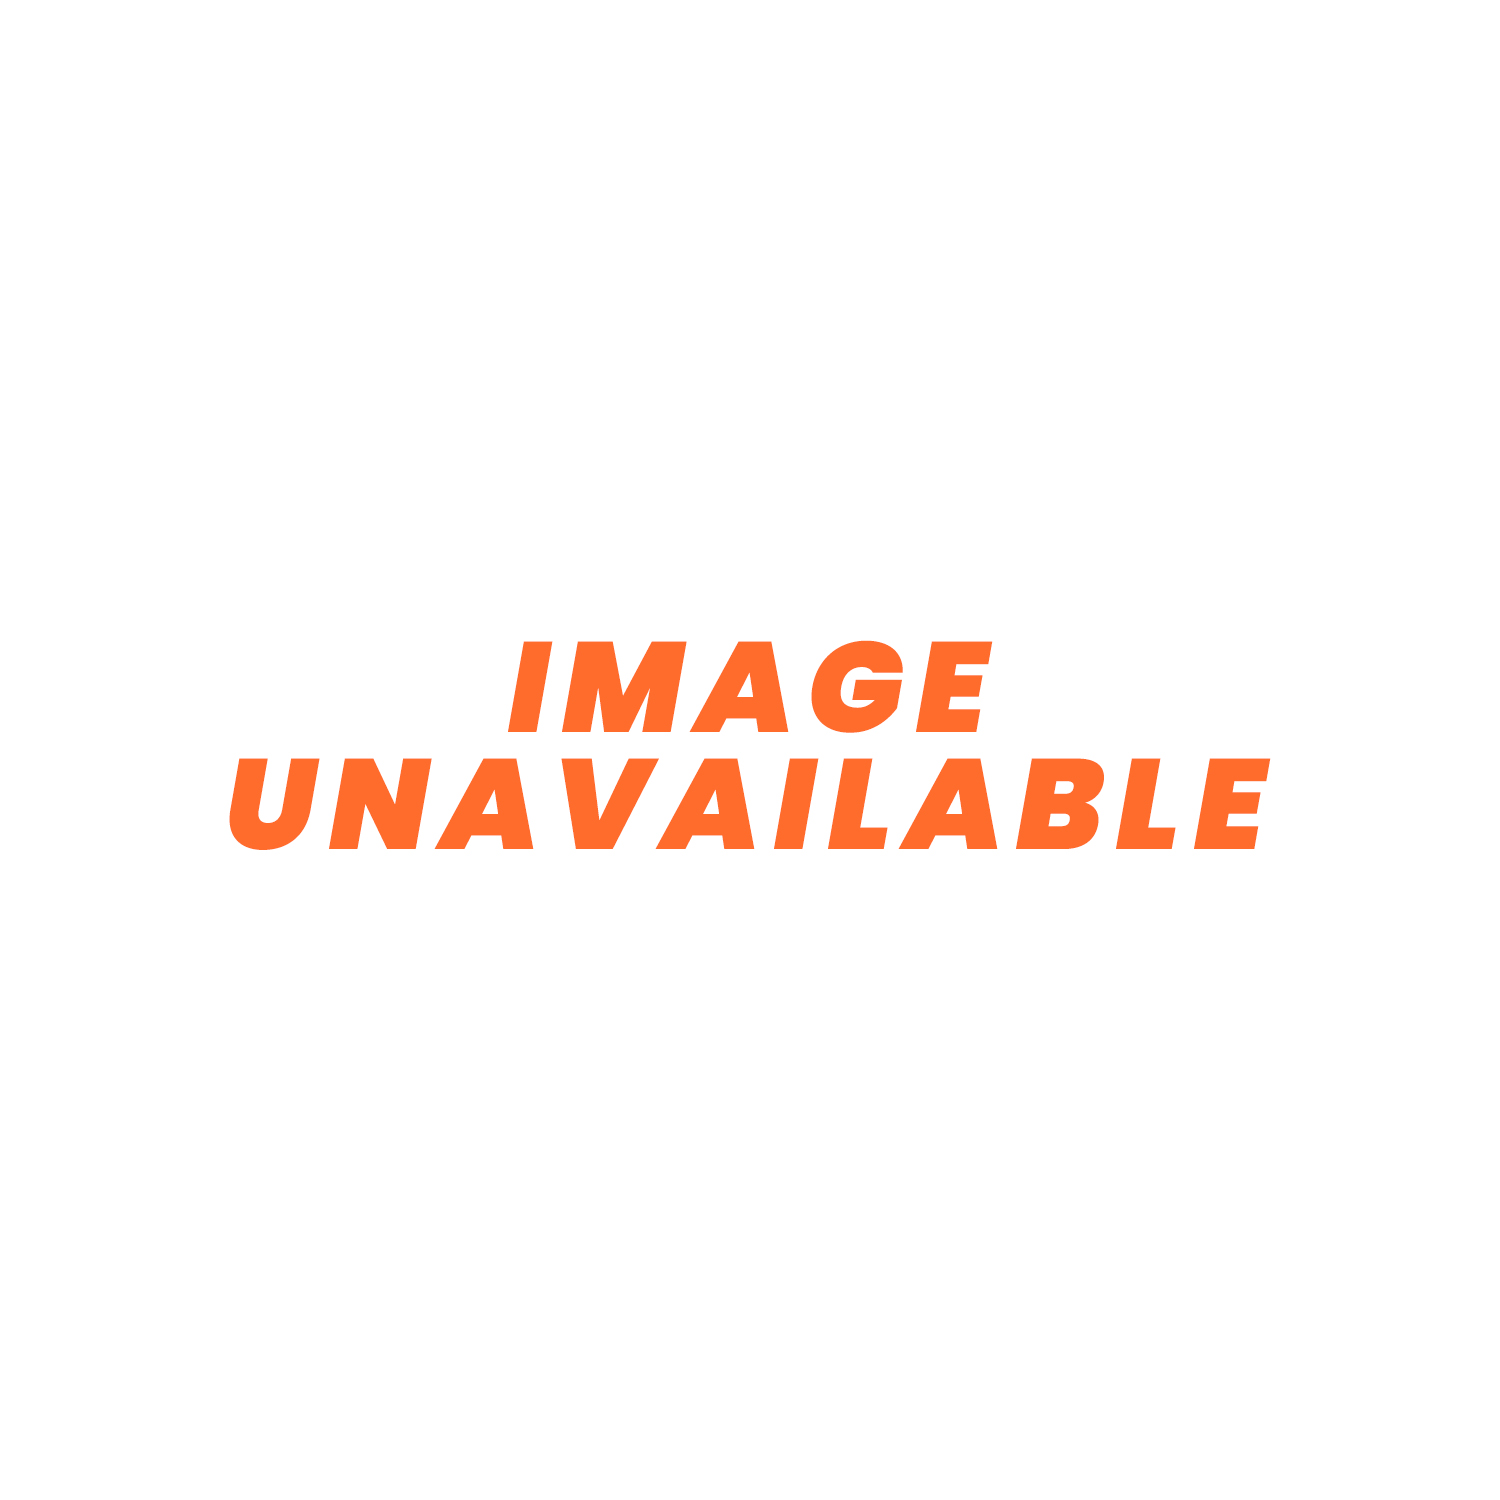 Sanden SD7H15 4712 155cc Compressor Poly-V 8 Rib Horizontal 119mm 12v